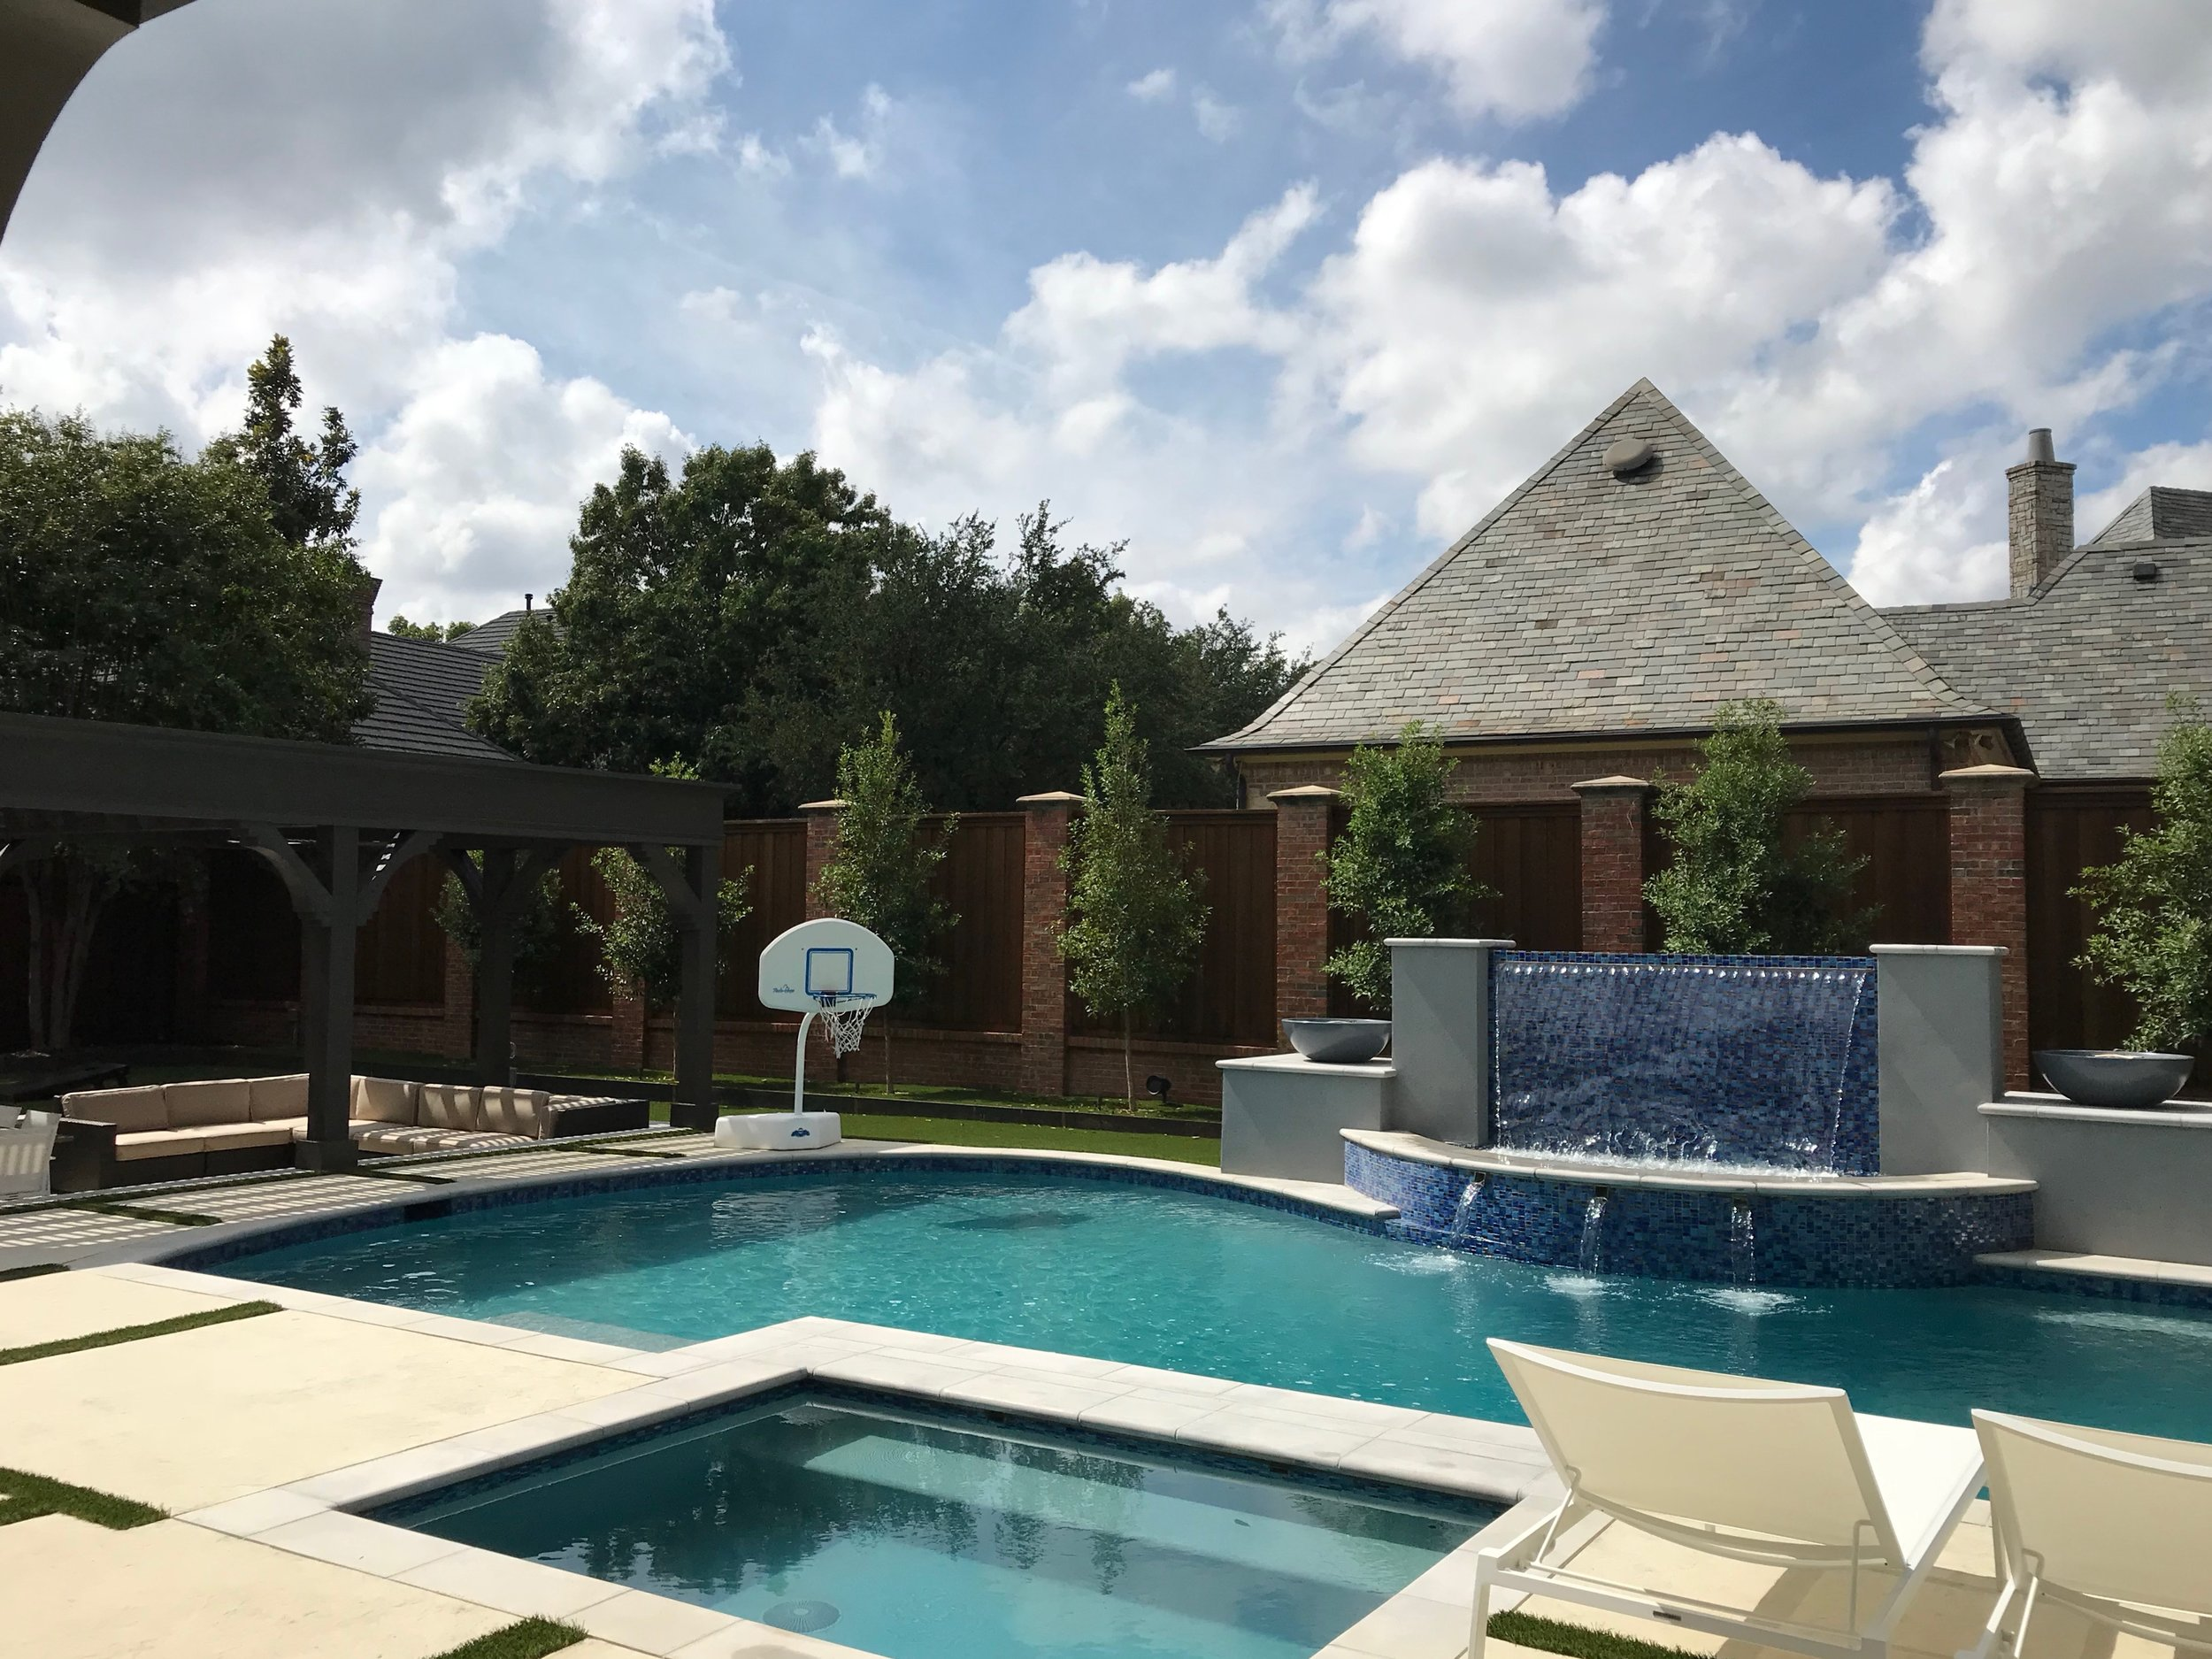 Plano Water Feature and Spa